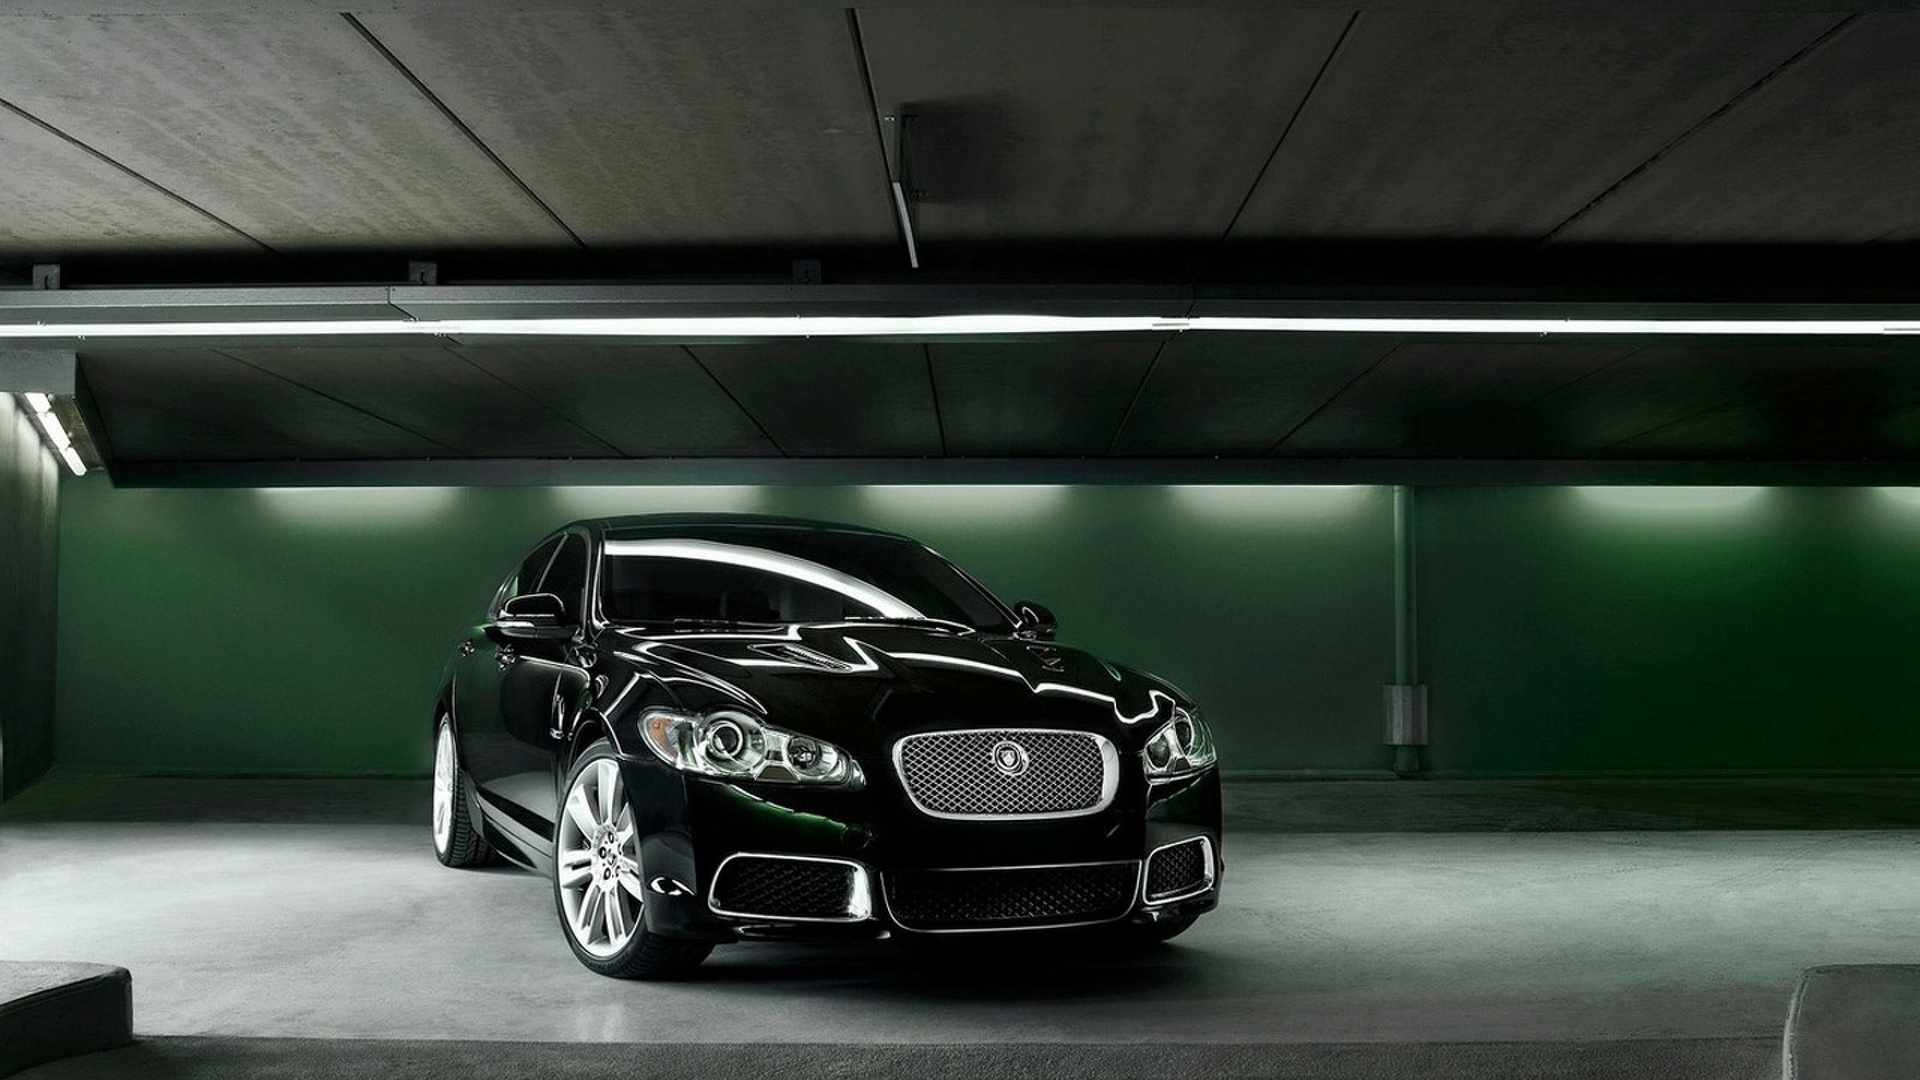 Watch the Jaguar XFR Hit 225 MPH